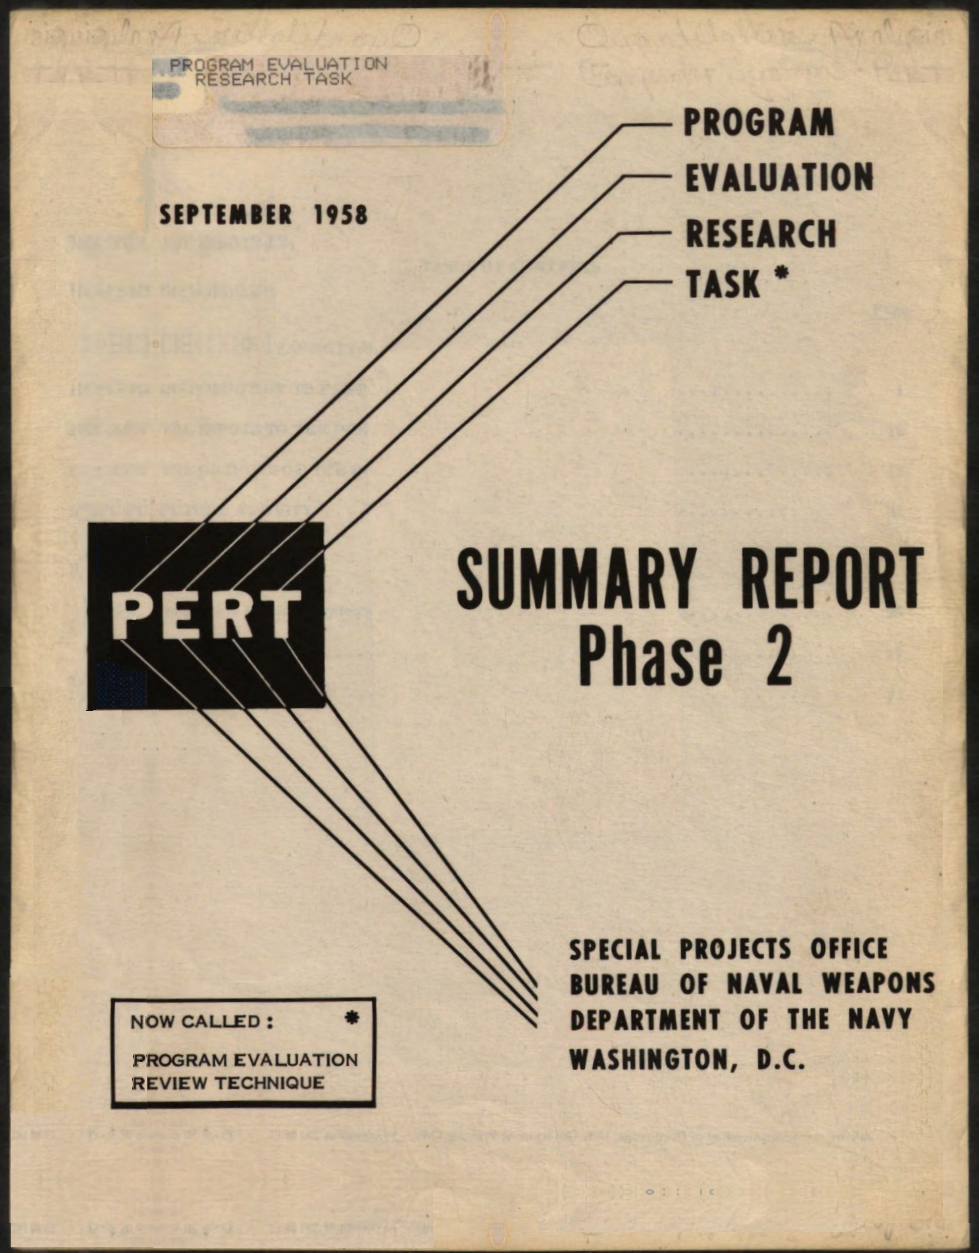 PERT Summary Report Phase 2 1958